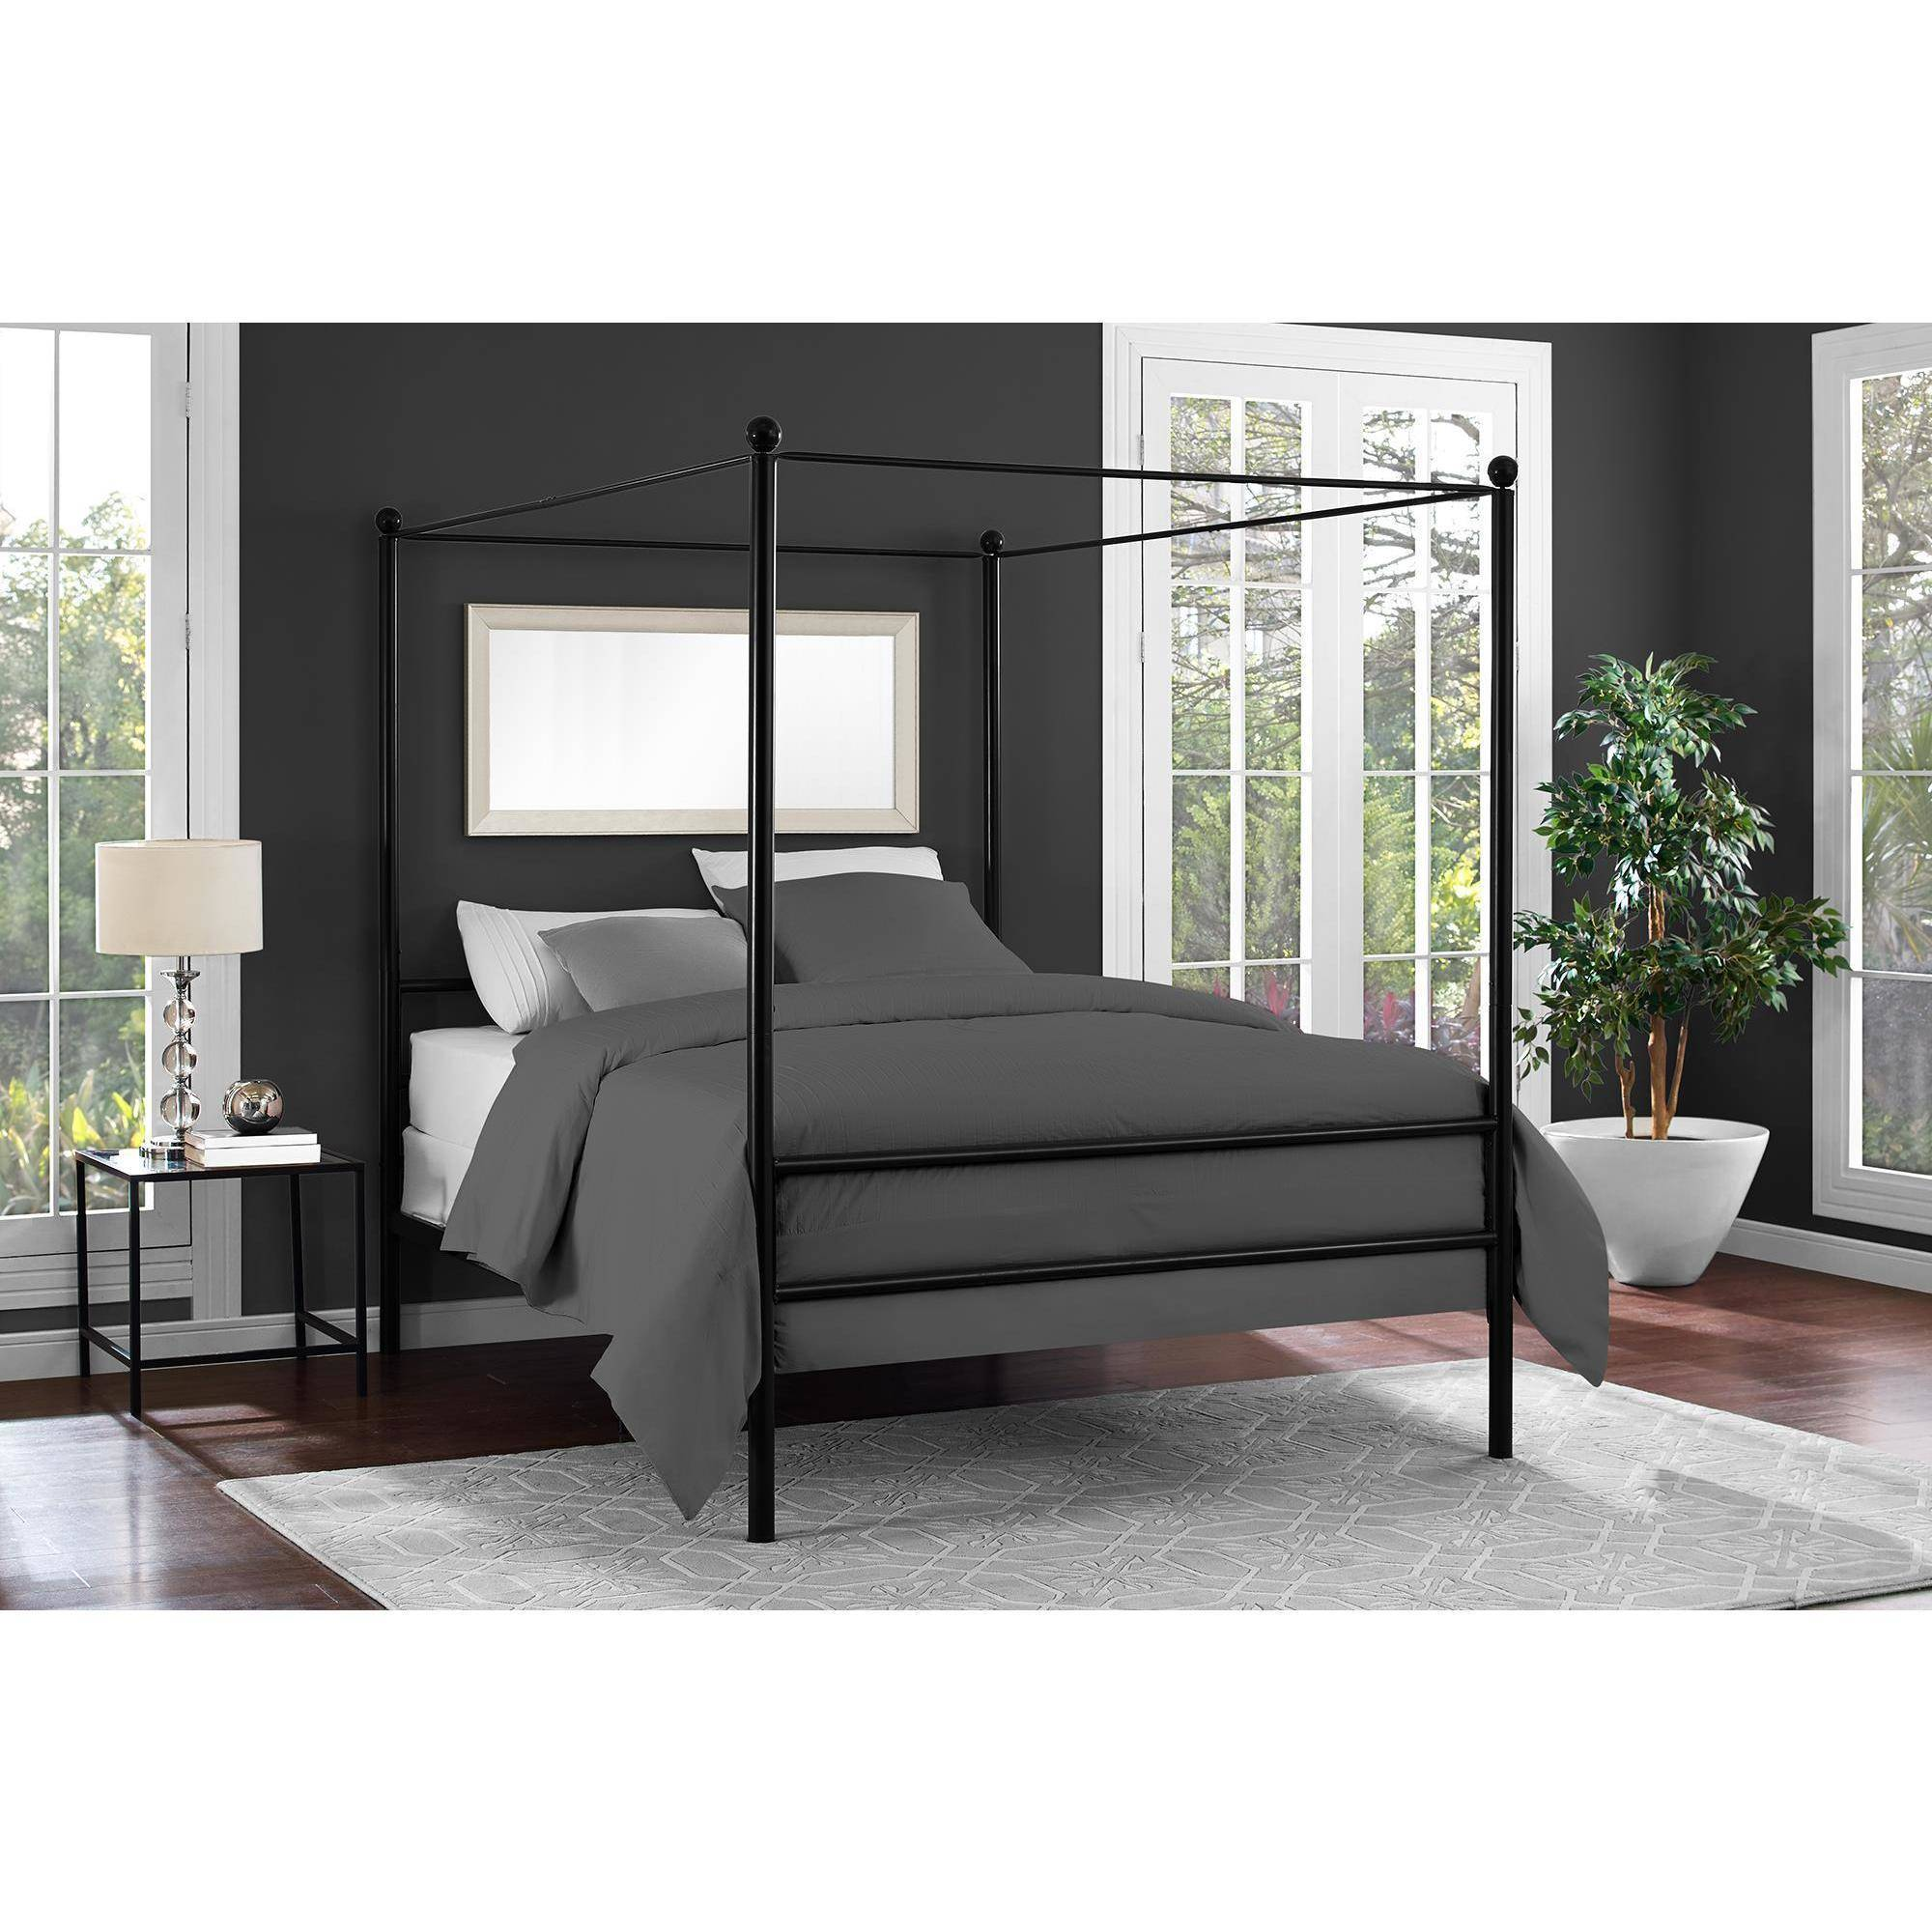 Mainstays metal canopy bed multiple colors multiple - Pictures of canopy beds ...